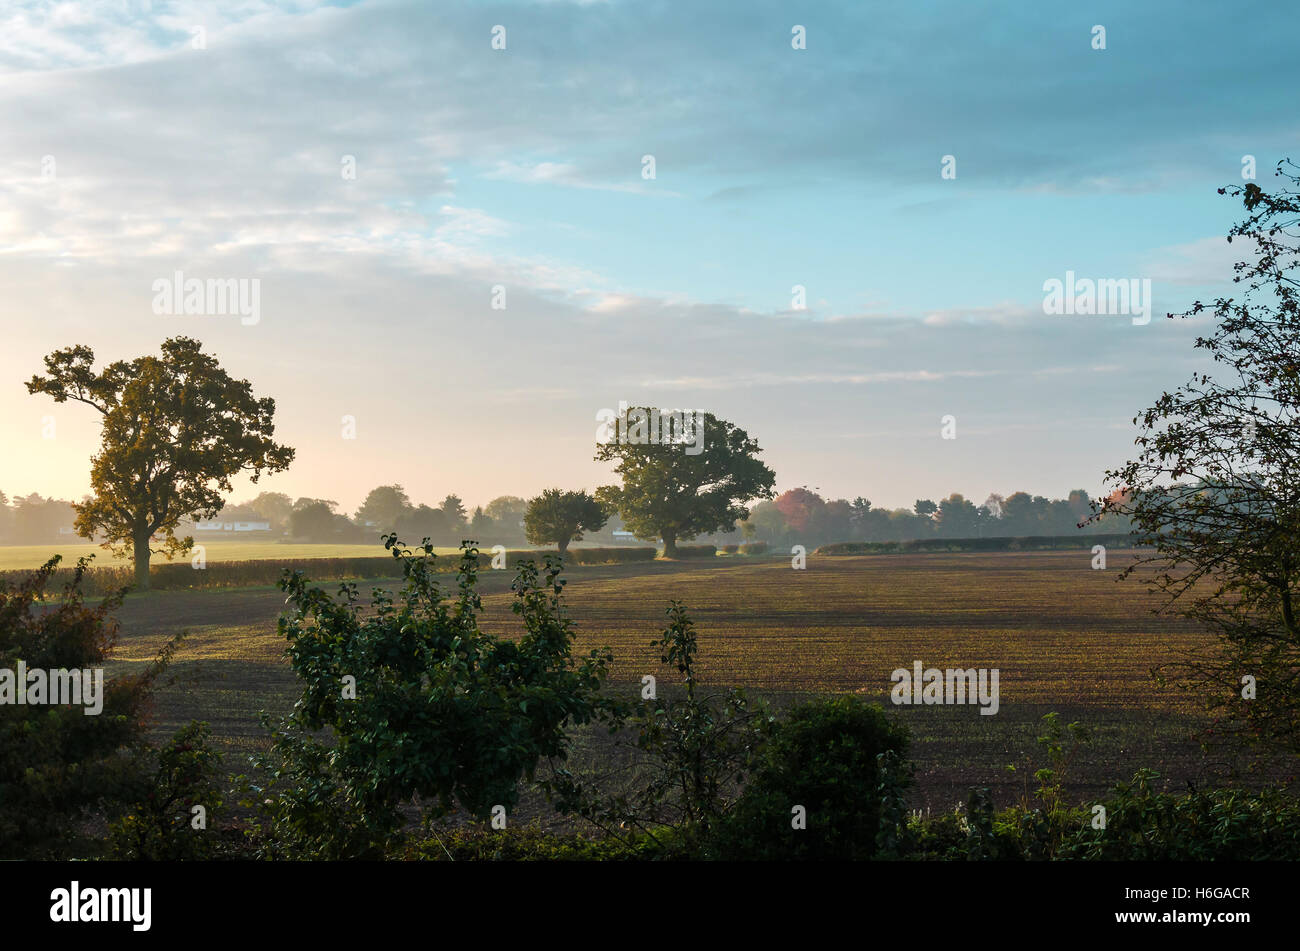 a-view-across-fields-and-hedgerows-on-a-hazy-autumn-morning-H6GACR.jpg